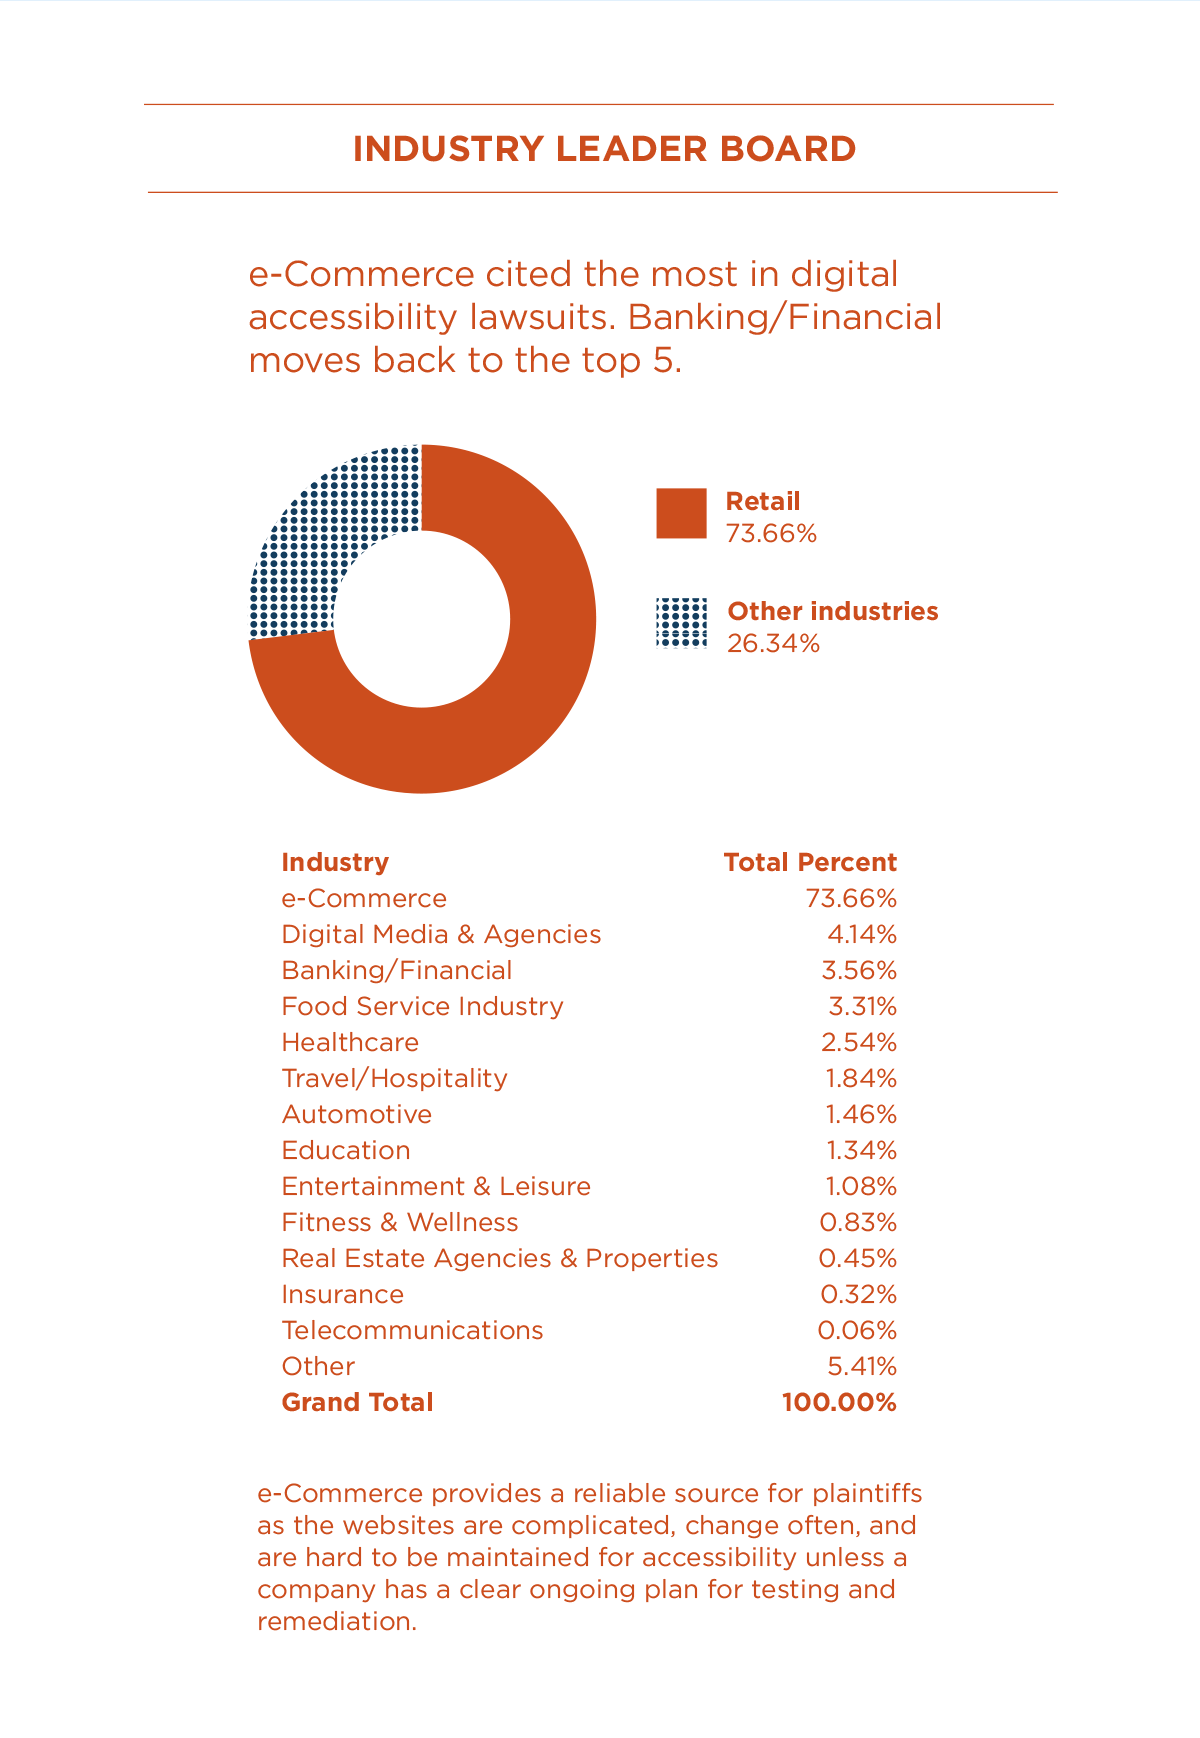 The text reads: e-Commerce cited the most in digital accessibility lawsuits. Banking/Financial moves back to the top 5.  E-commerce had 73.66% while all other industries totaled 26.34%. Image description: e-Commerce 73.66%; Digital Media & Agencies 4.14%; Banking/Financial 3.56%; Food Service Industry 3.31%; Healthcare 2.54%; Travel/Hospitality 1.84%; Automotive 1.46%; Education 1.34%; Entertainment & Leisure 1.08%; Fitness & Wellness 0.83%; Real Estate Agencies & Properties 0.45%; Insurance 0.32%; Telecommunications 0.06%; and Other 5.41% for a Grand Total of 100.00%.   The text reads: e-Commerce provides a reliable source for plaintiffs as the websites are complicated, change often, and are hard to be maintained for accessibility unless a company has a clear ongoing plan for testing and remediation.